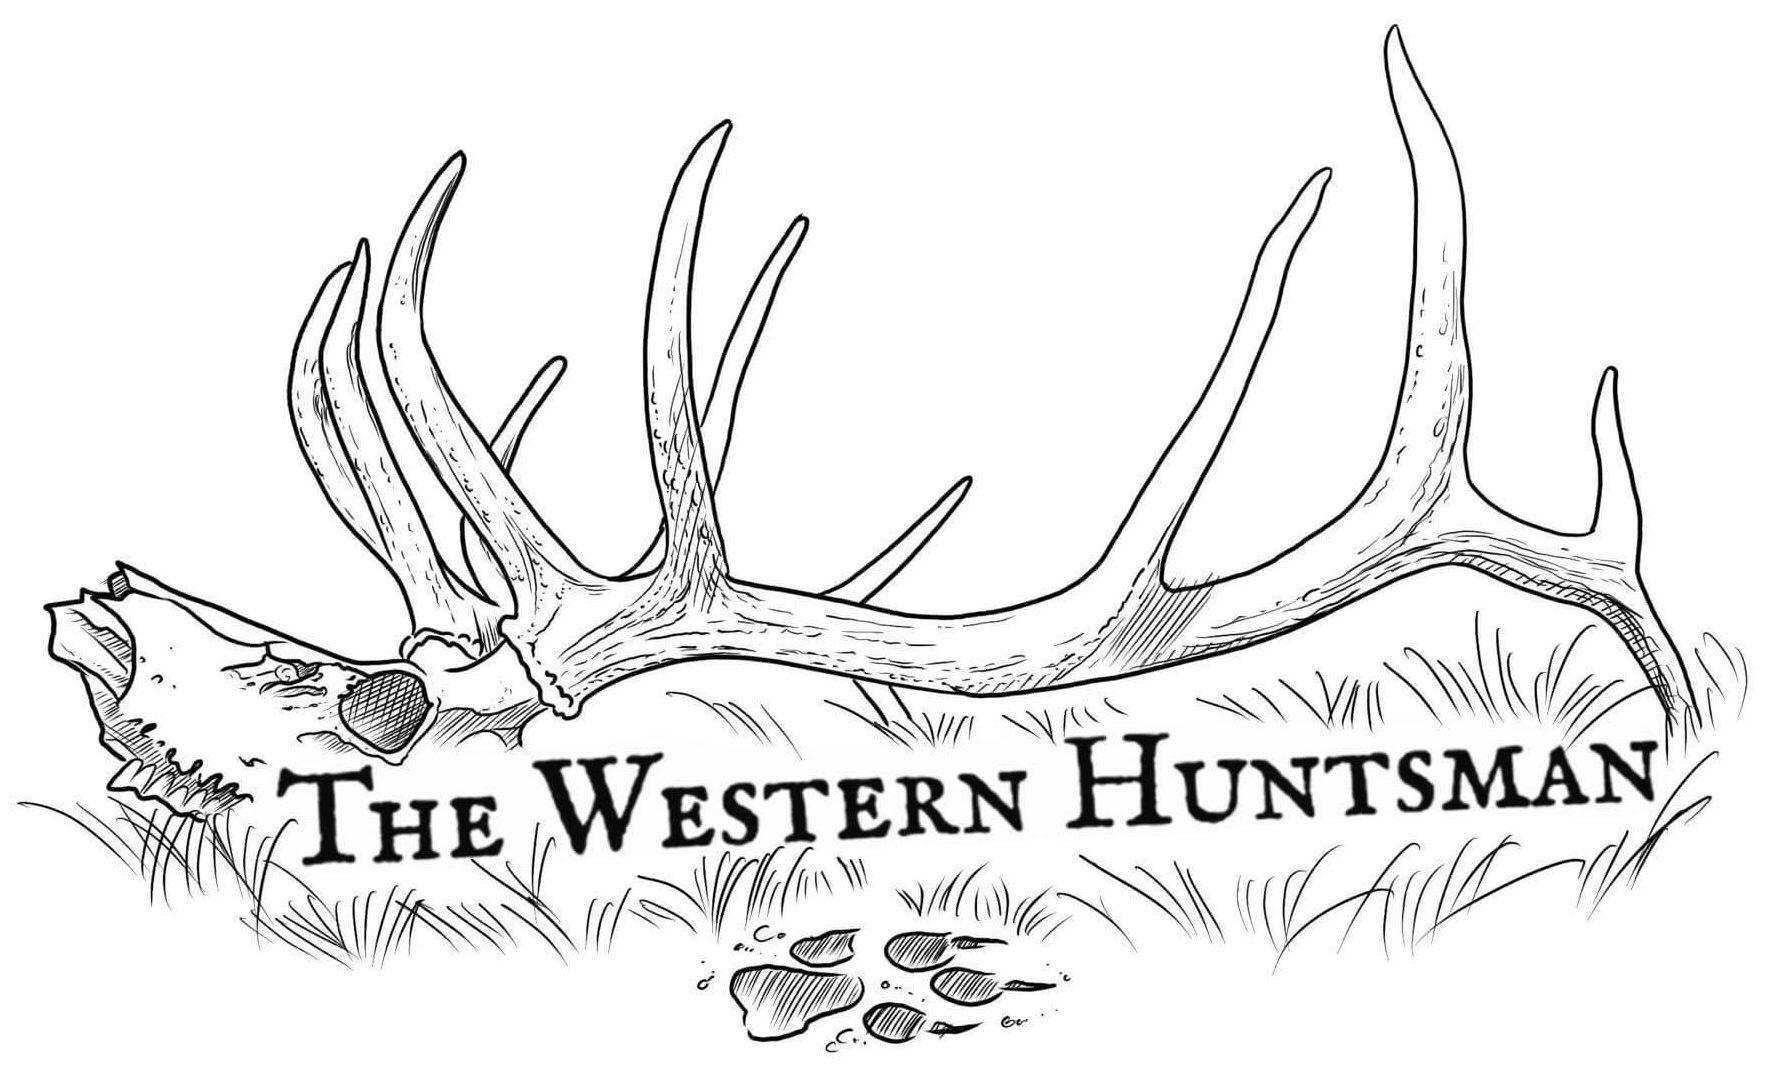 The Western Huntsman